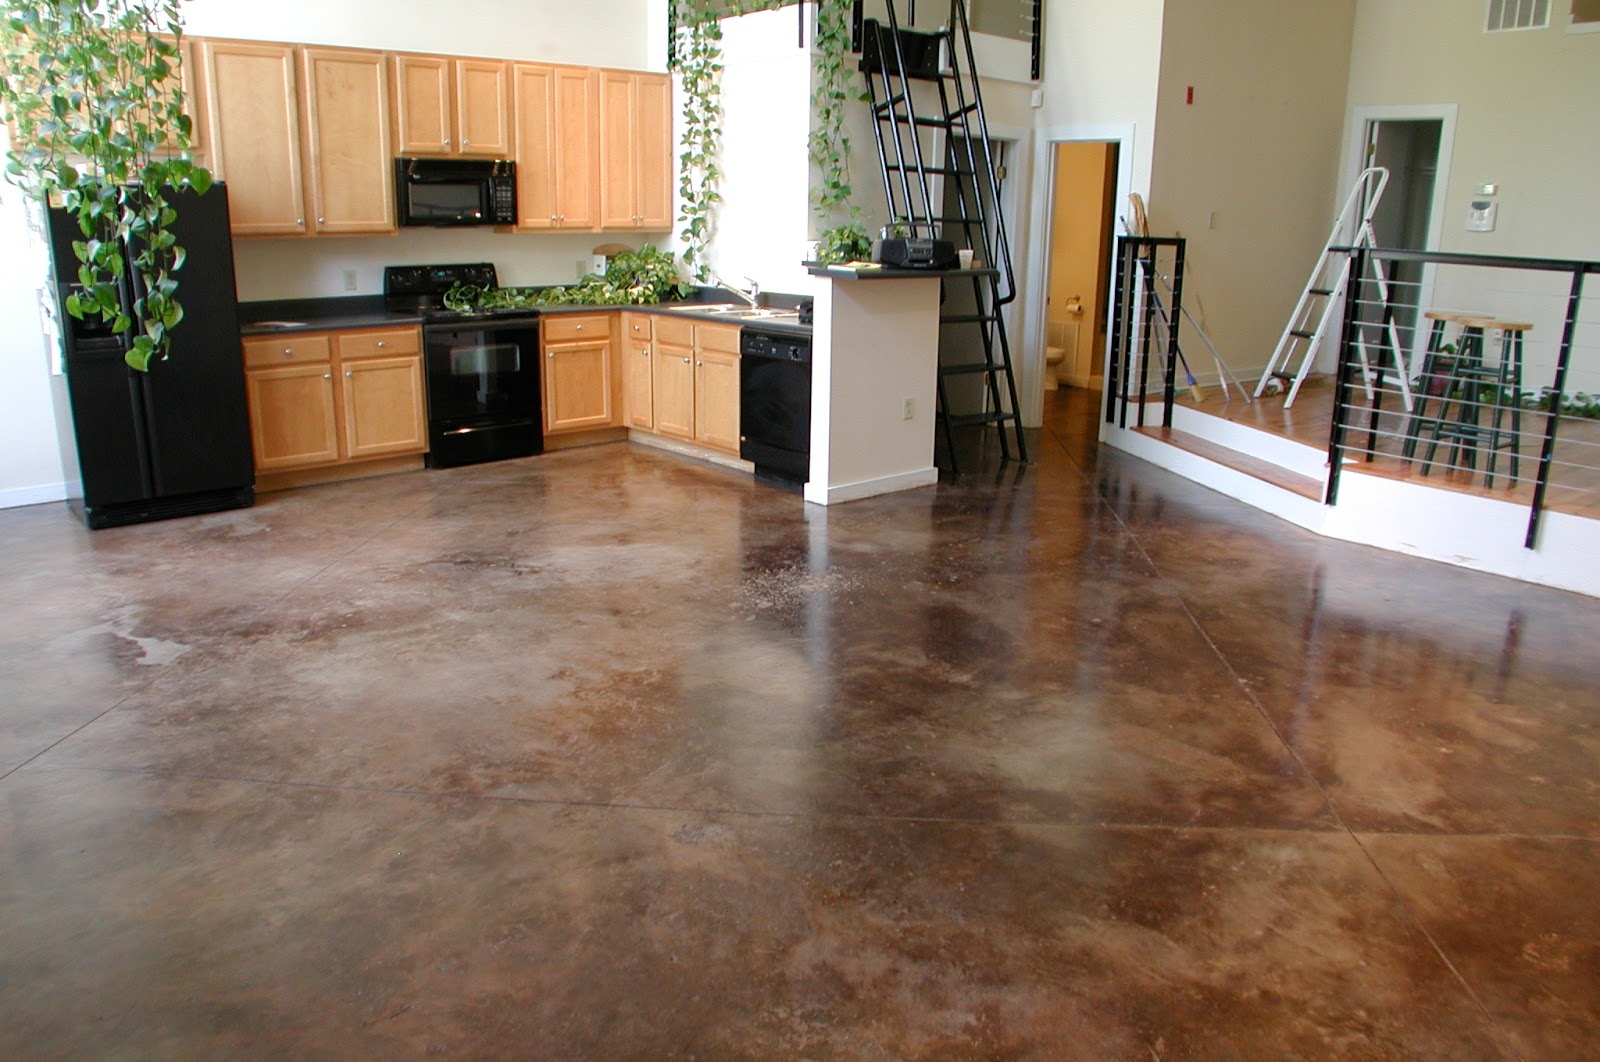 Cement Floors In Kitchen Foundation Dezin Decor Natural Stone Polished Floor Design